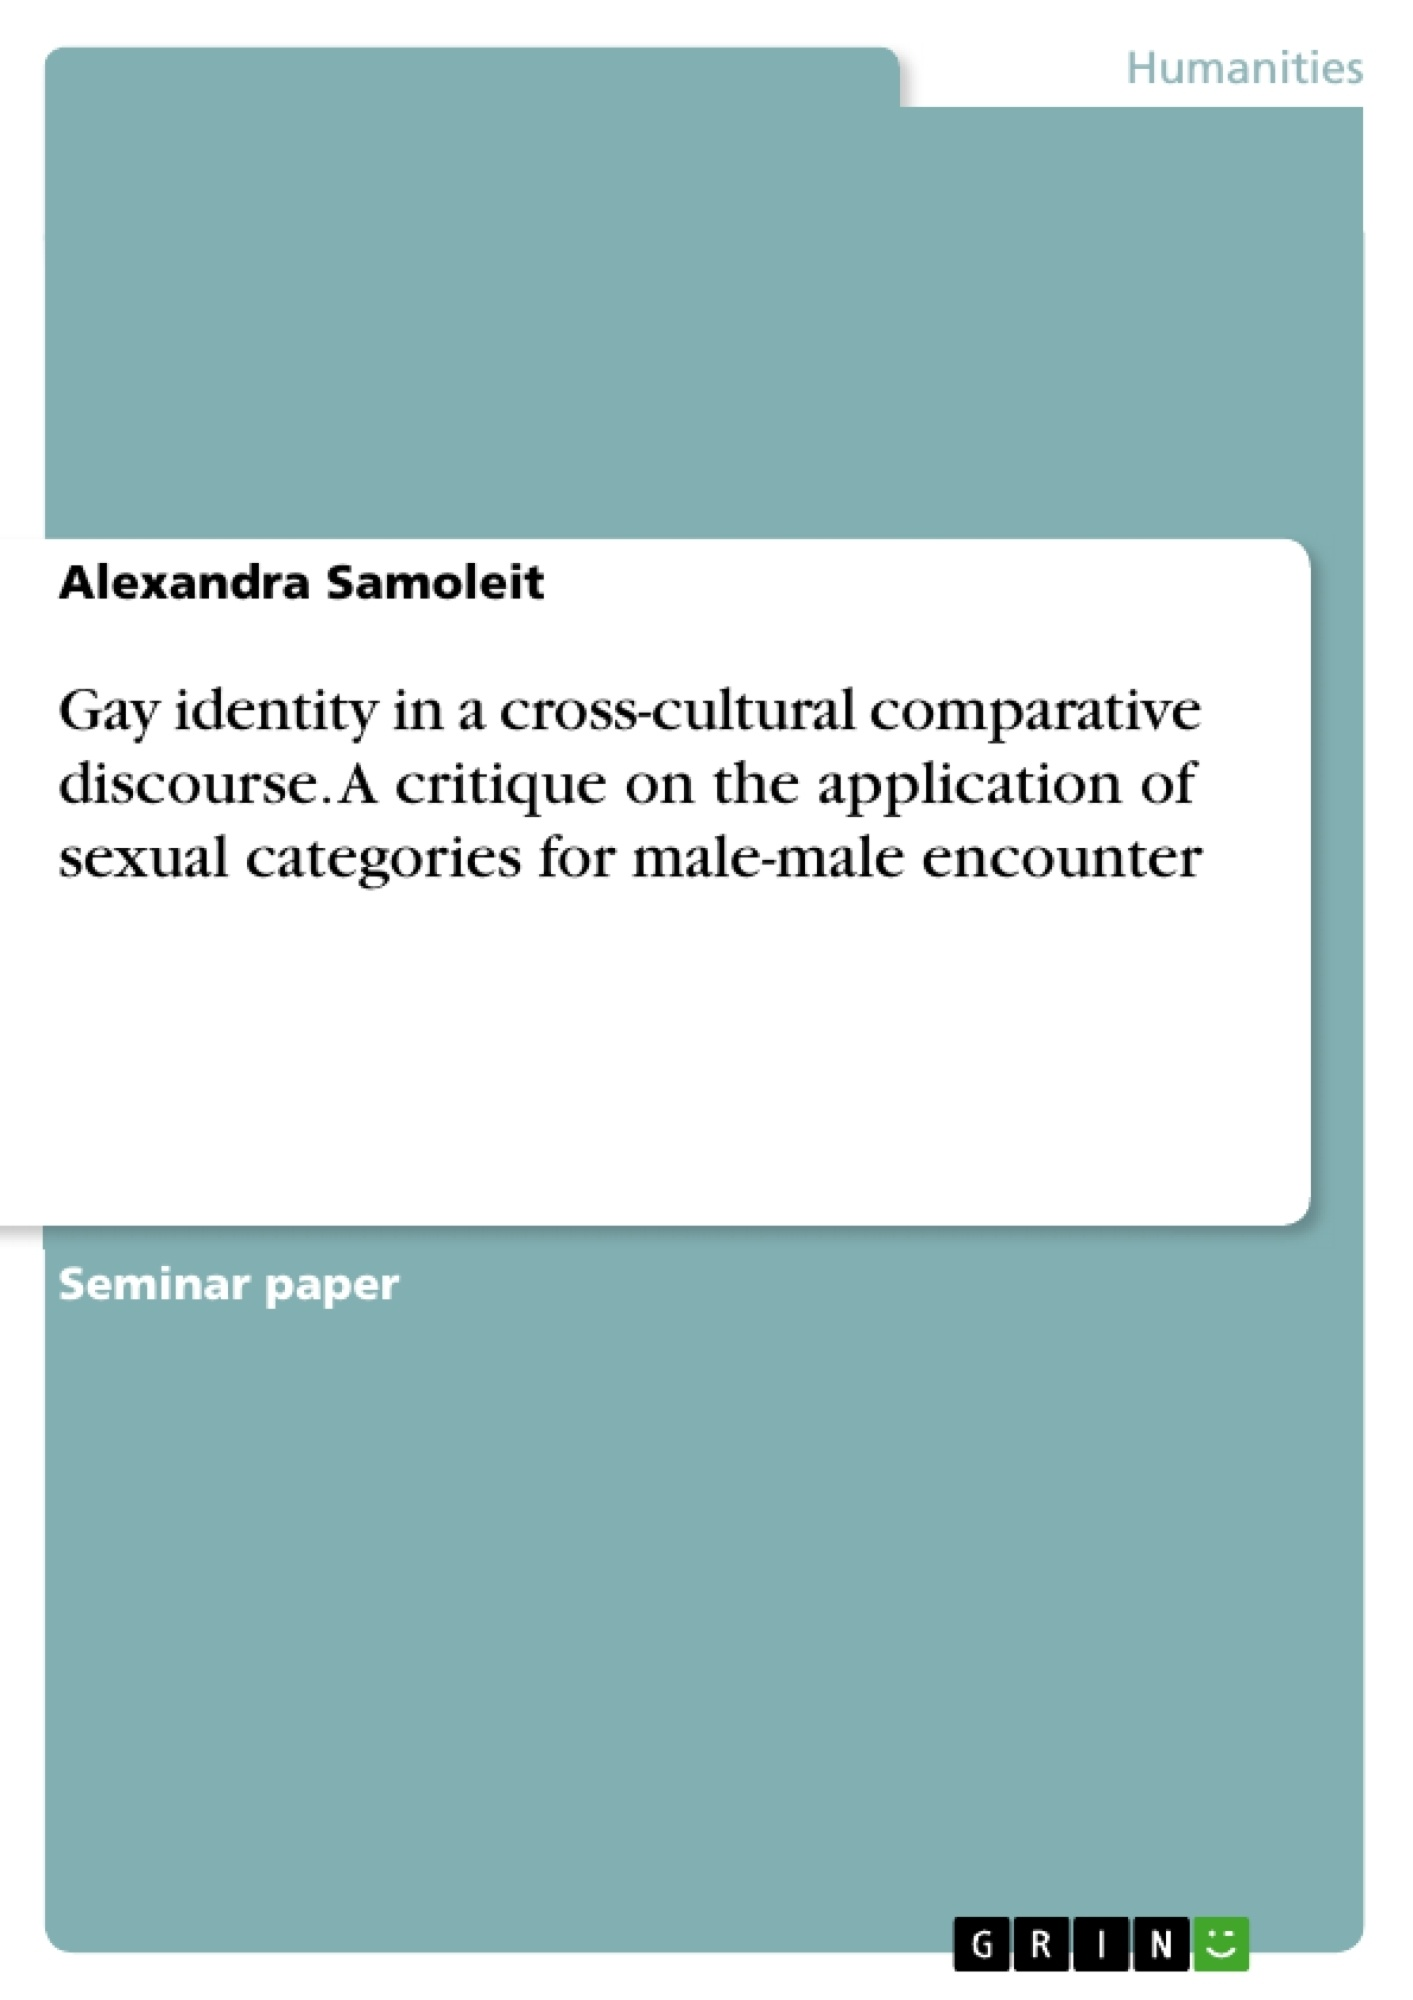 Title: Gay identity in a cross-cultural comparative discourse. A critique on the application of sexual categories for male-male encounter